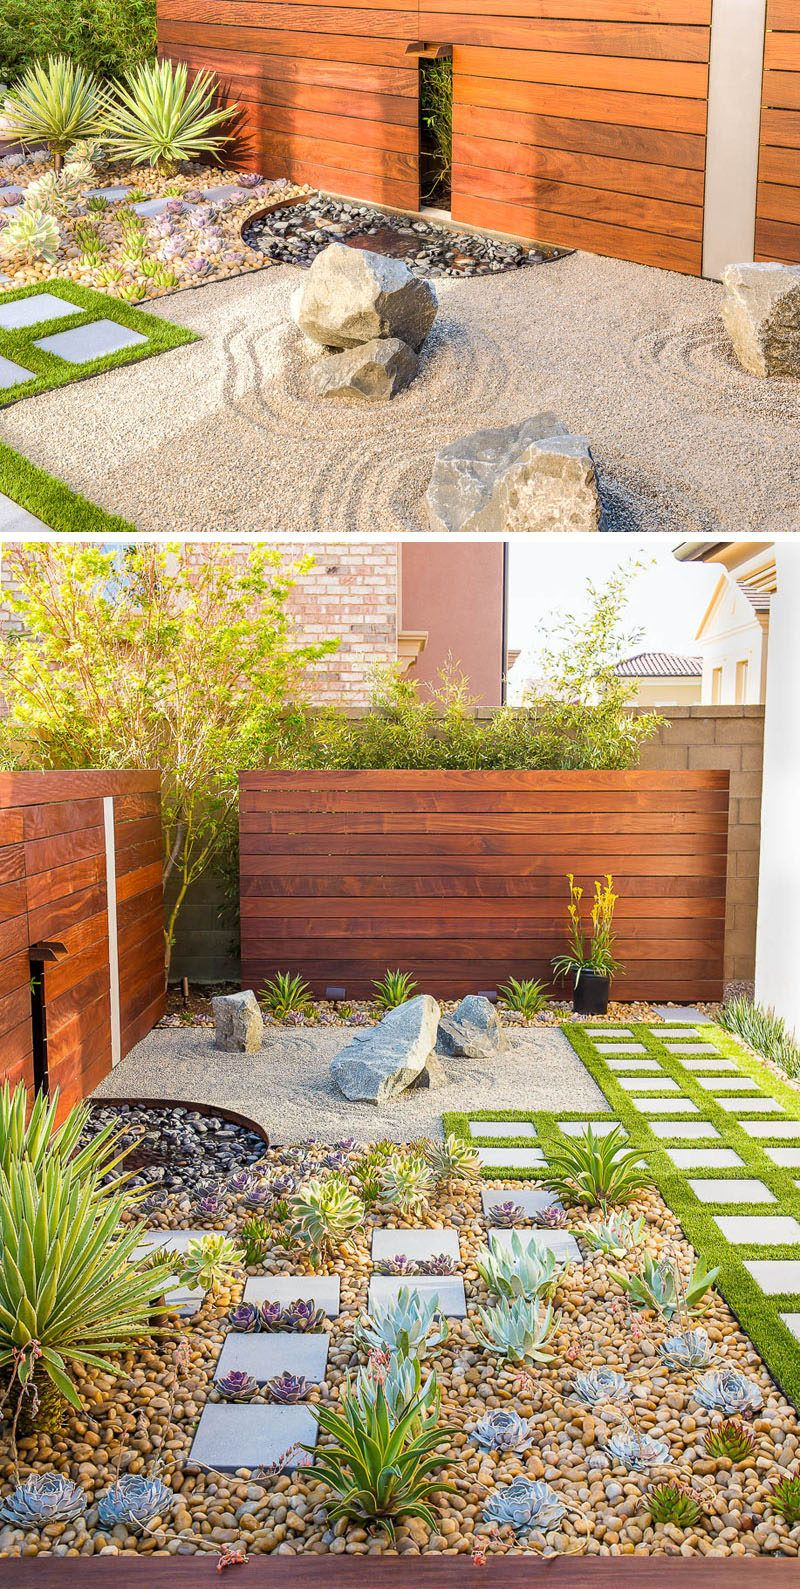 Everything Plants And Flowers 8 Elements To Include When Designing Your Zen Gard